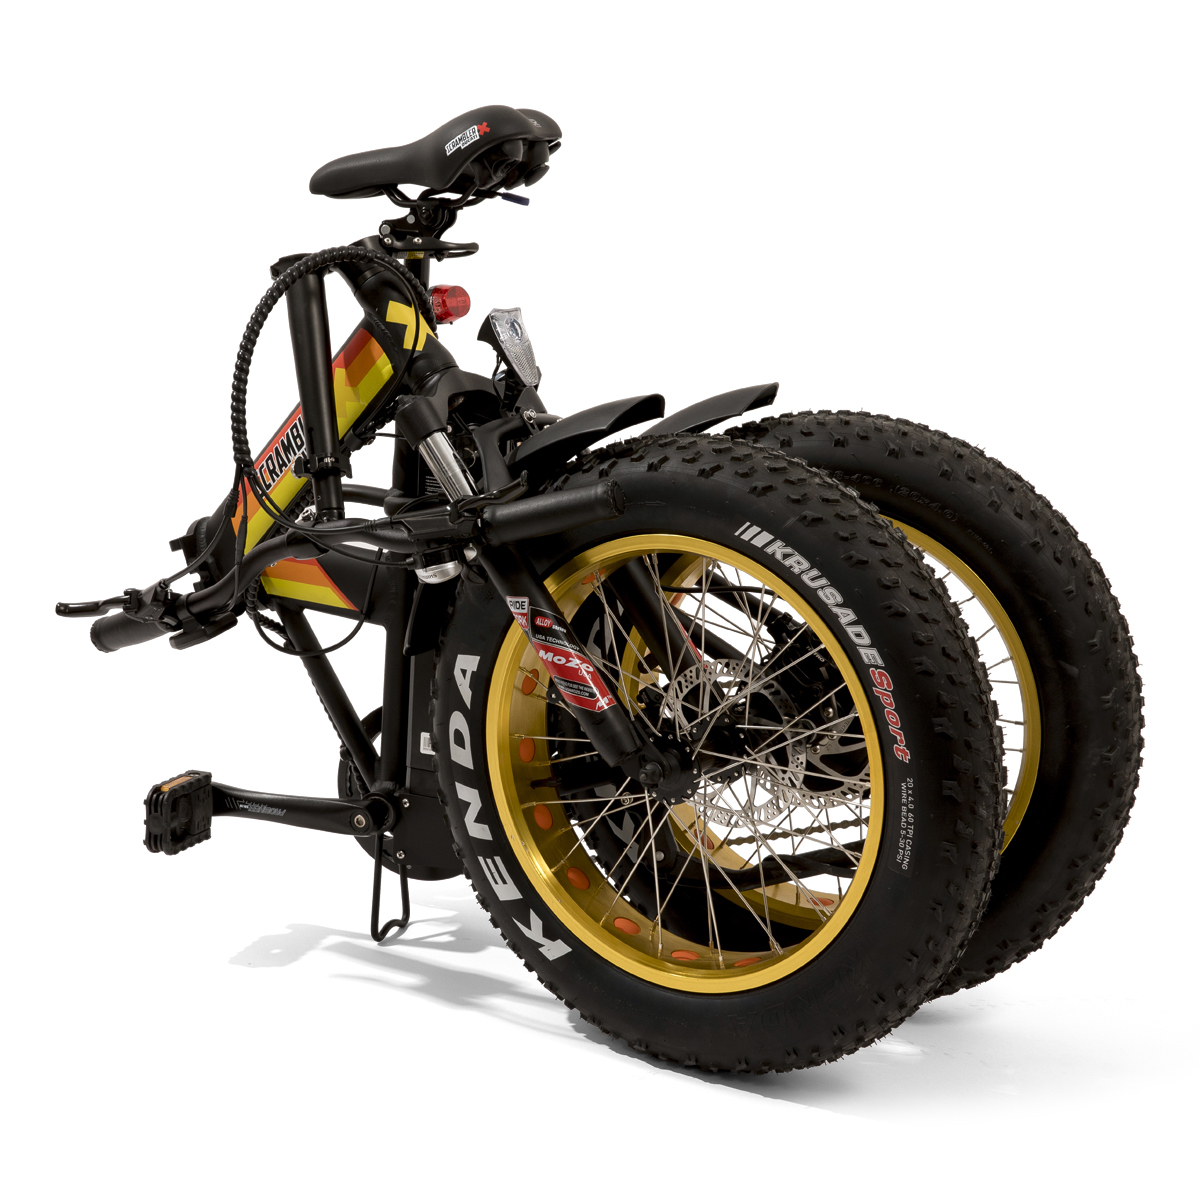 Scrambler Ducati Ebike Foldable In Black E Yellow Edition